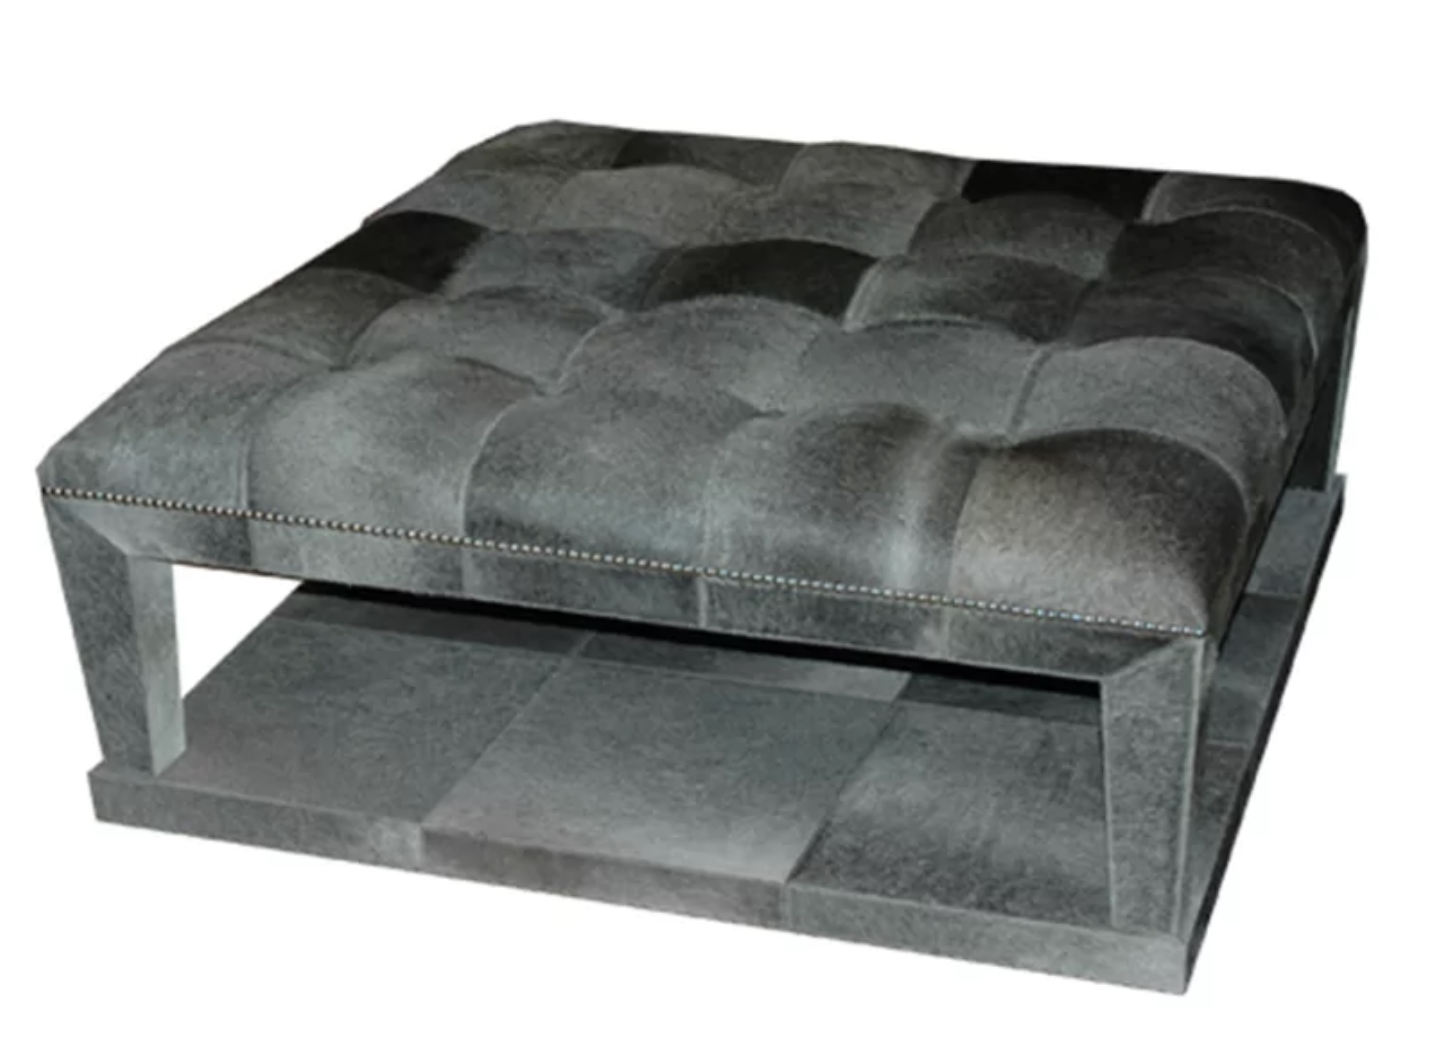 serge-de-troyer-collection-leather-coffee-table